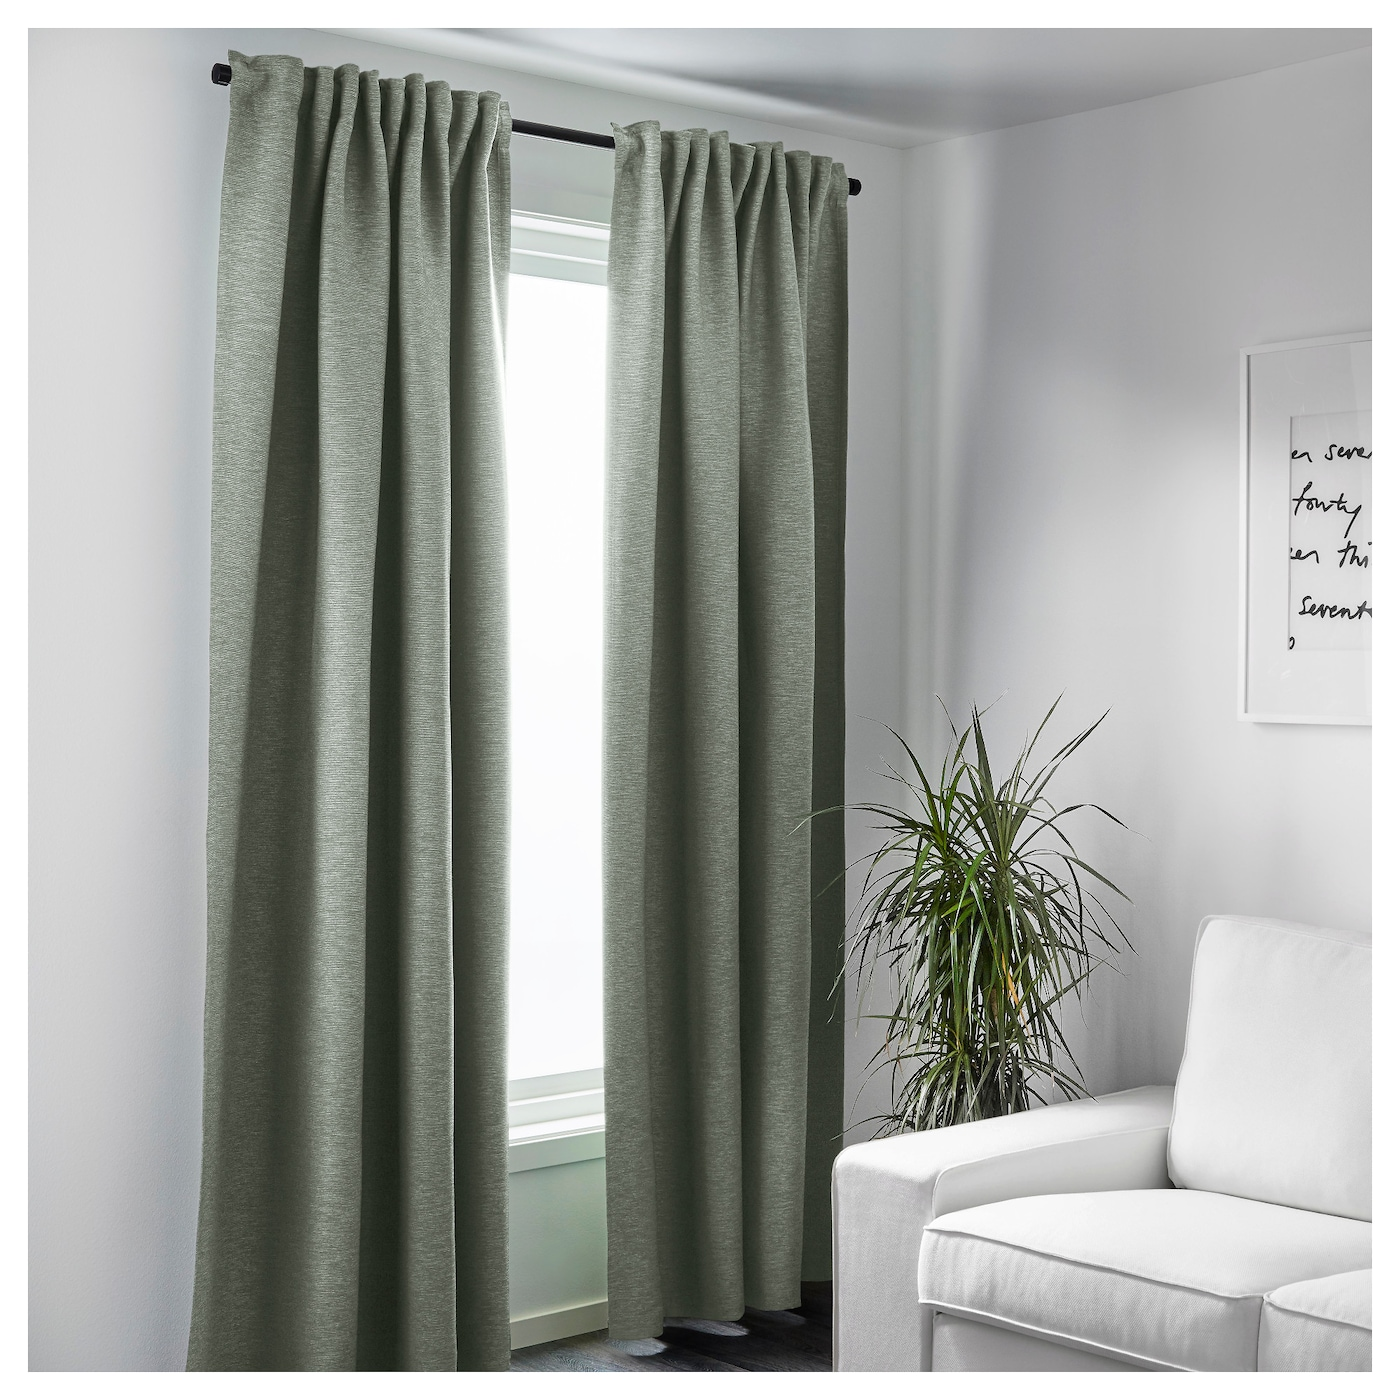 pinterest pair best ideas looking inspiration curtains amazing sweet weight curtain on blinds width ikea about length crazy decor green vilborg